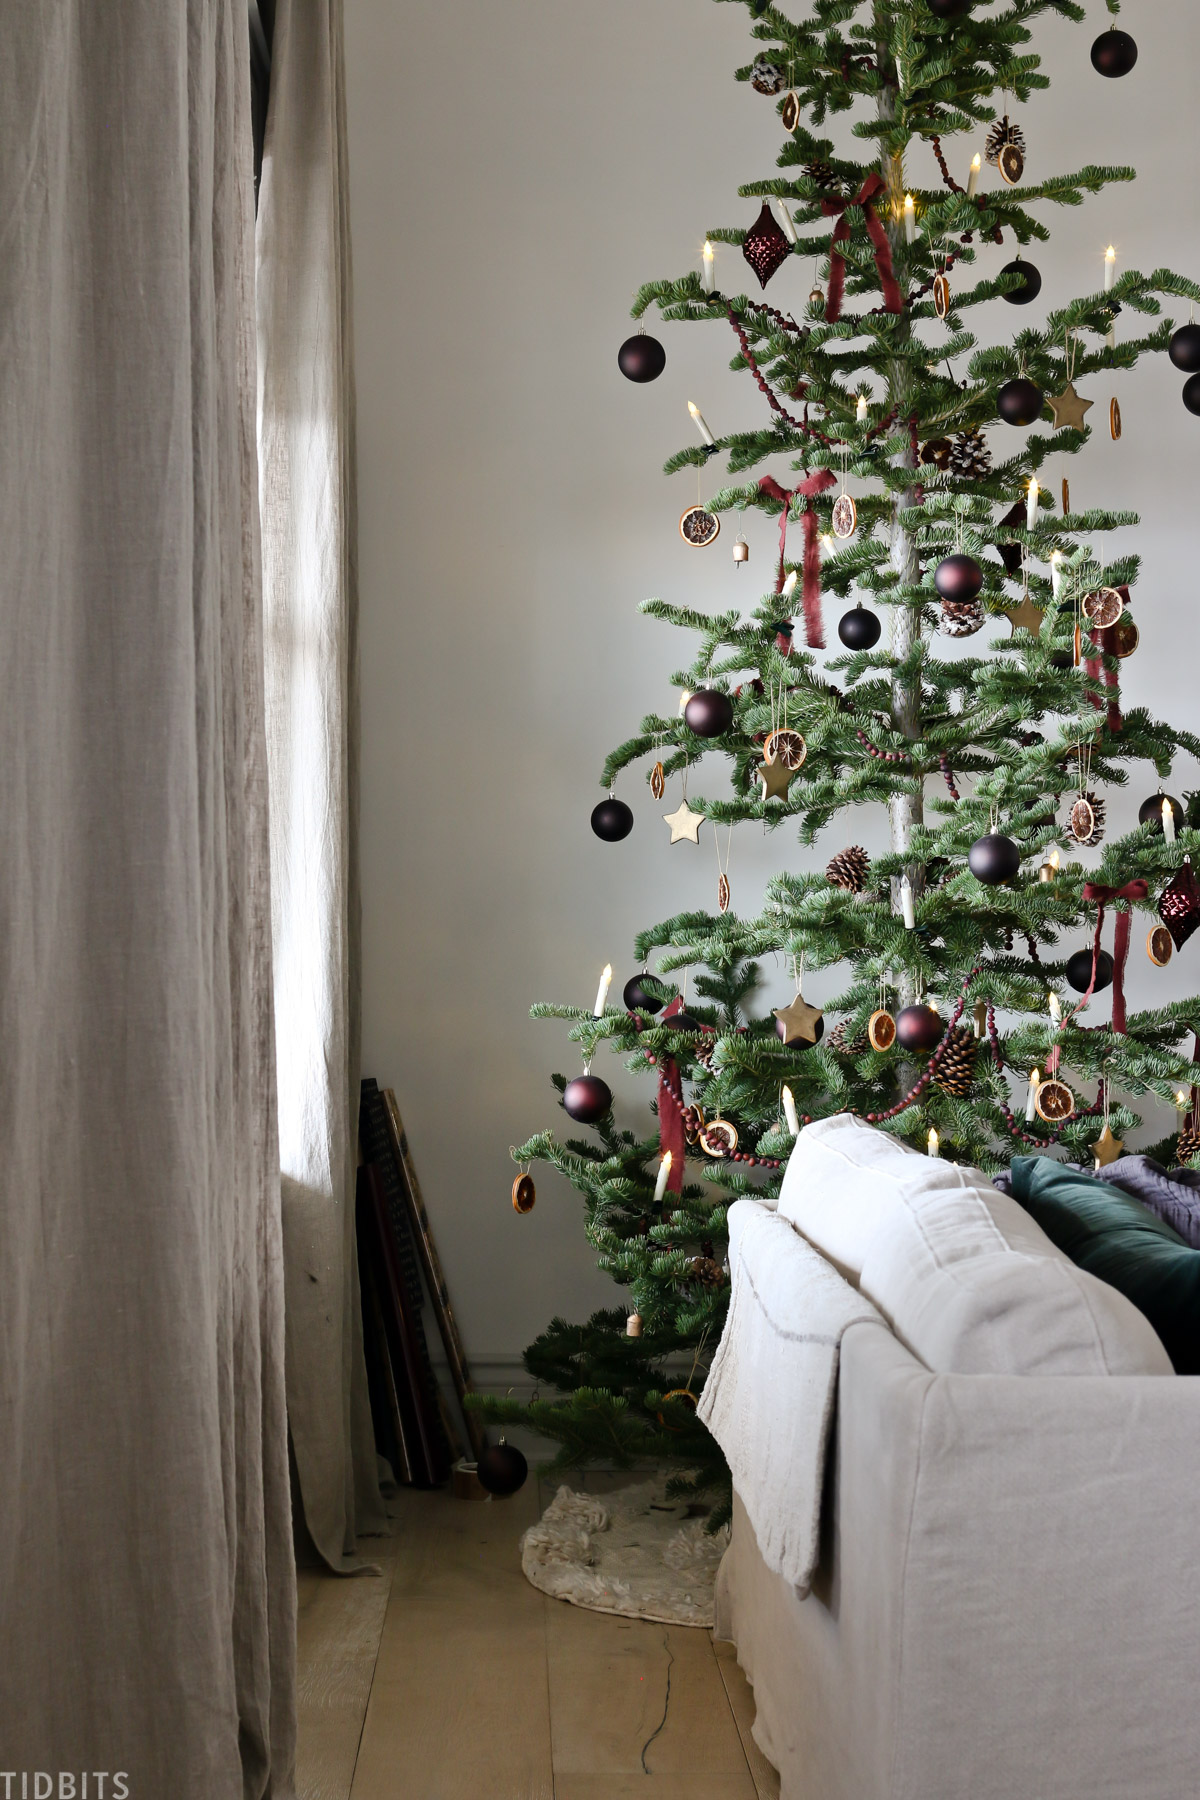 European old world style Christmas tree in living room